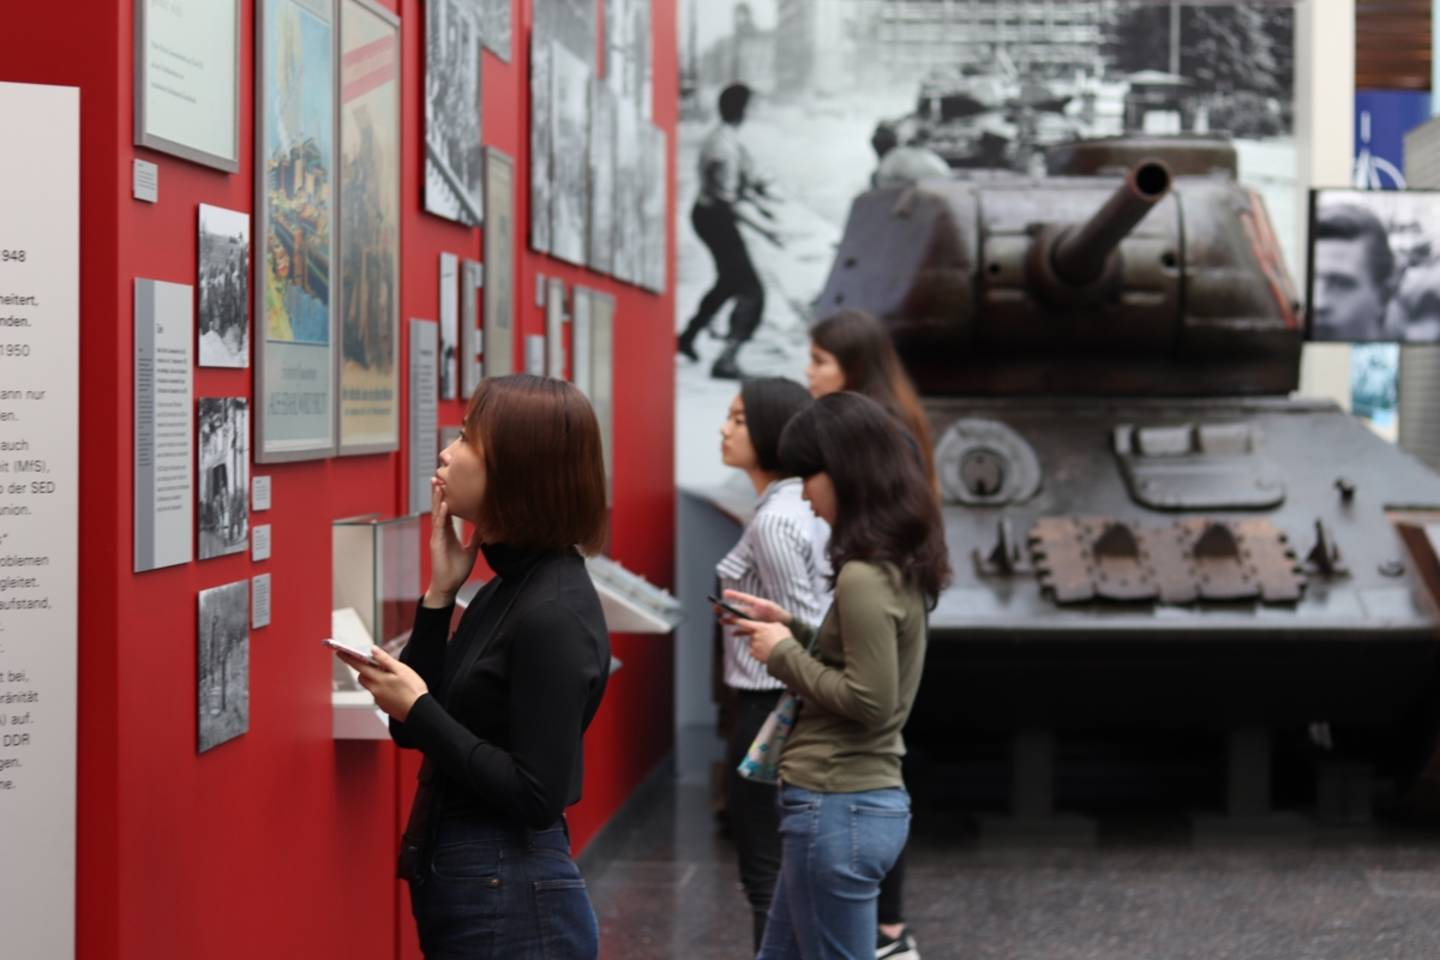 Students looking at the exhibits in the Haus der Geschichte. There is a tank in the background.